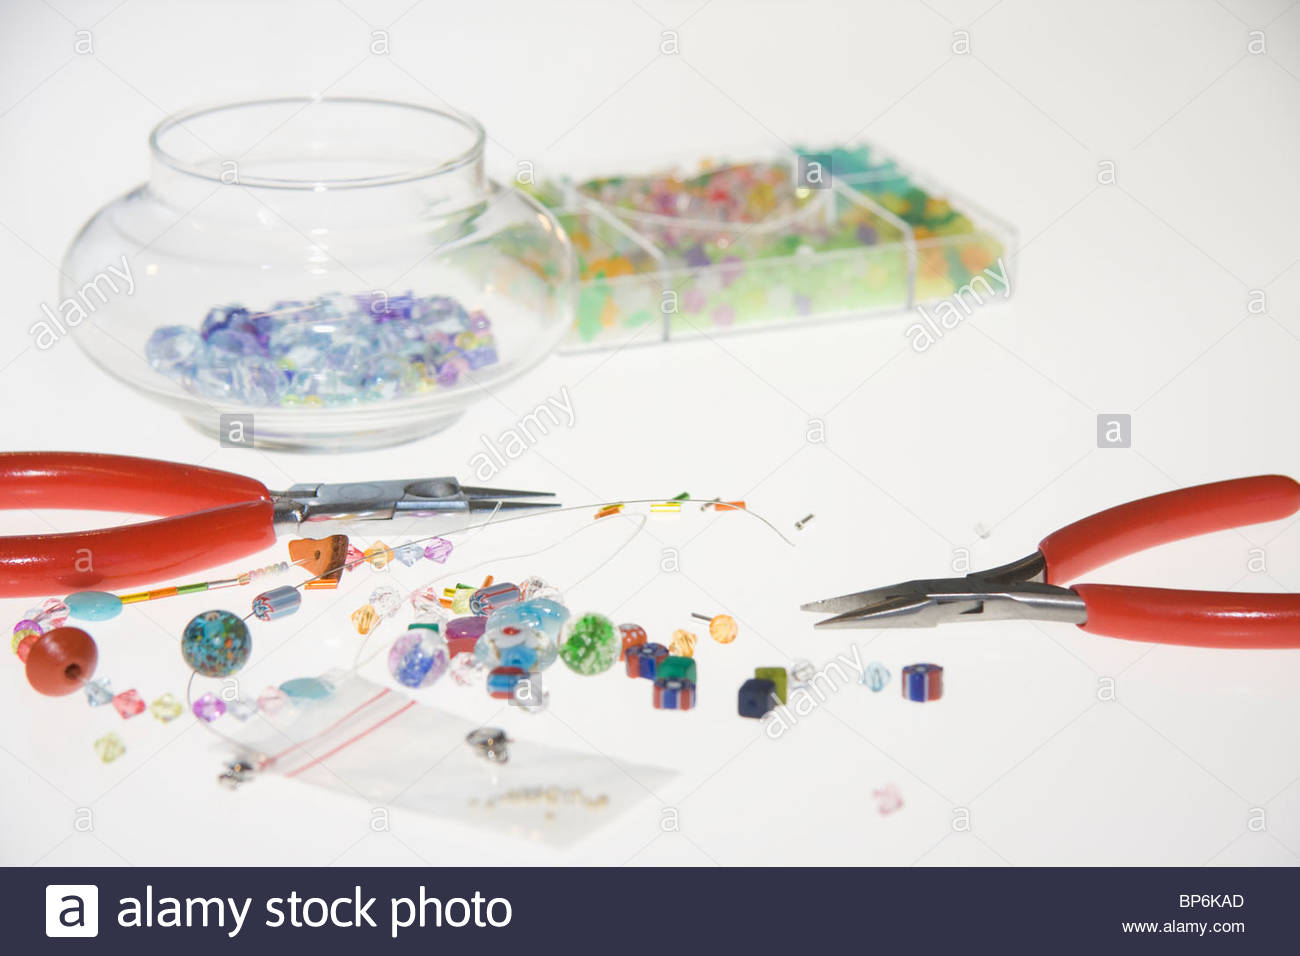 Colored beads and tools for making jewelry - Stock Image